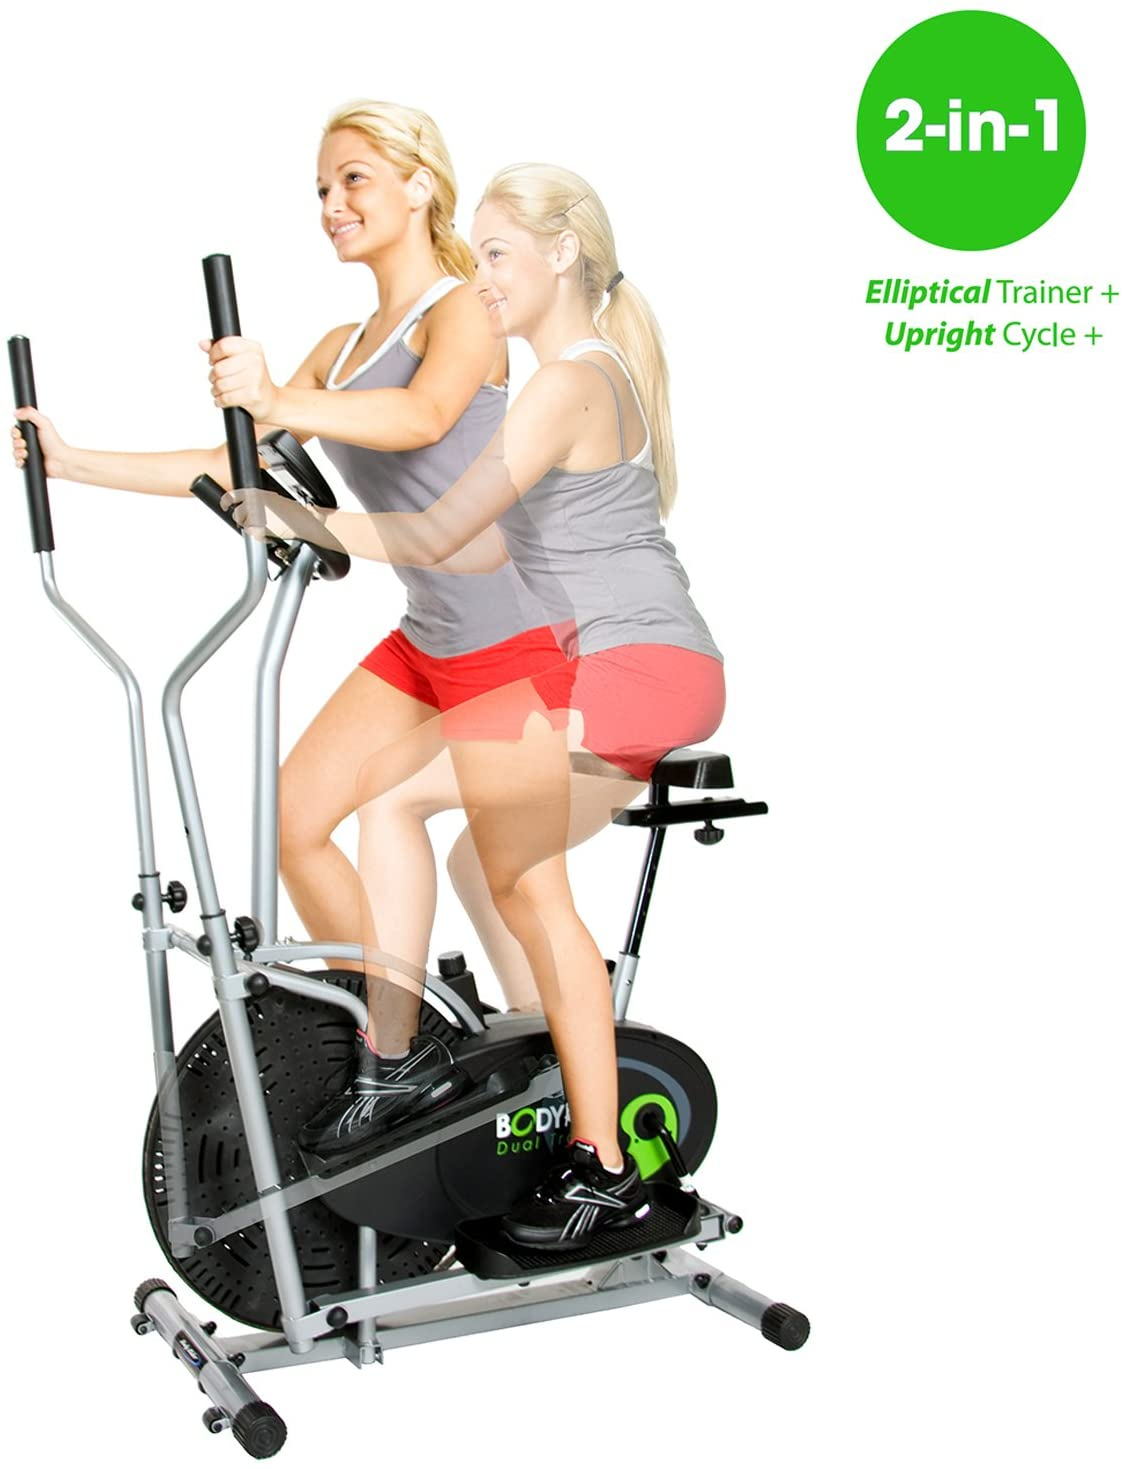 Best 2 in 1 Exercise Bike and Cross Trainers